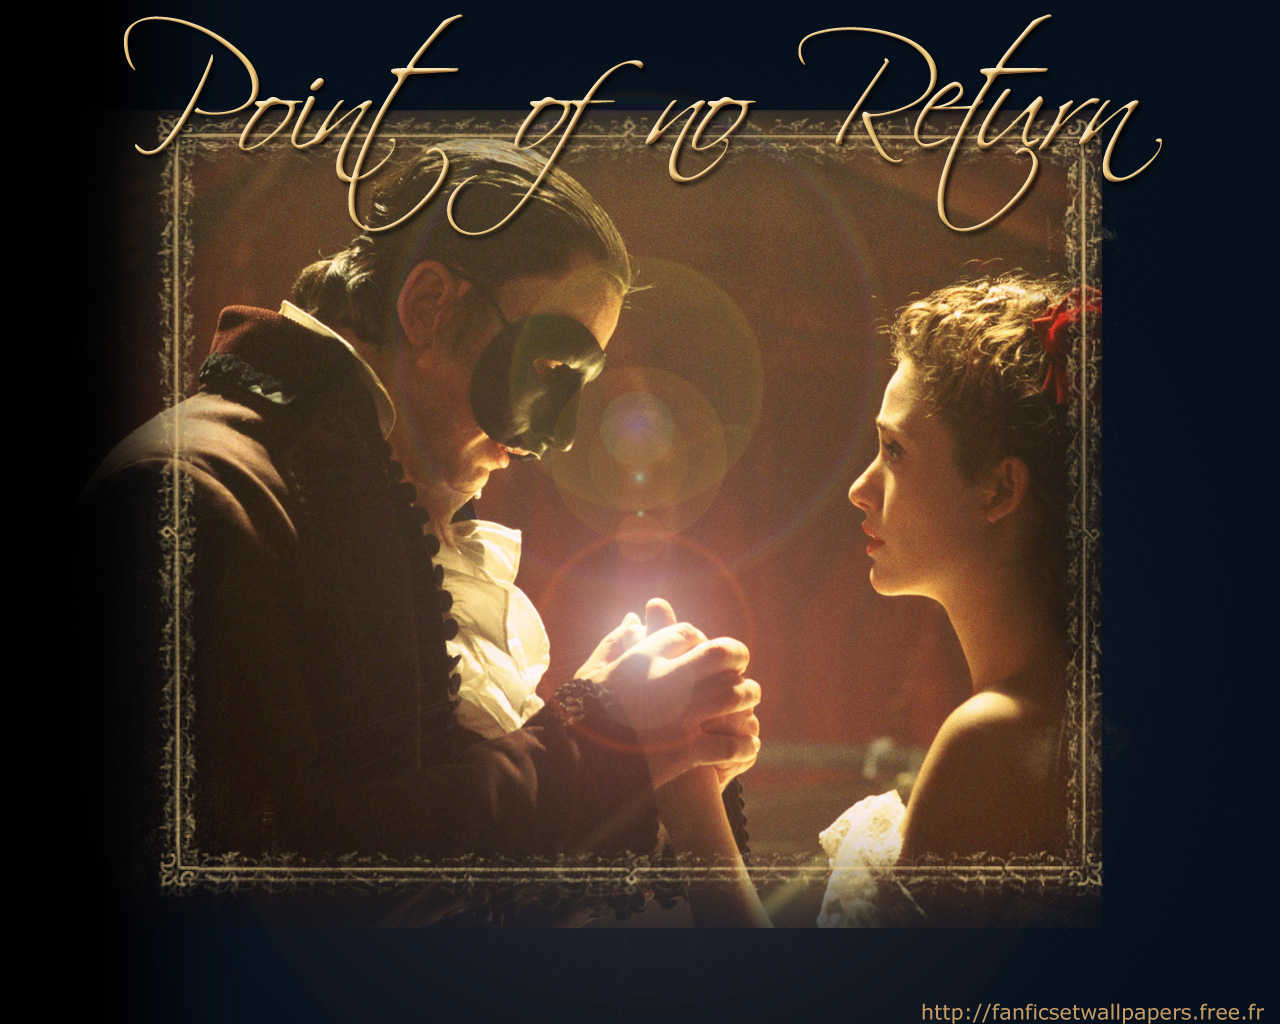 fanfics & wallpapers : movies /the phantom of the opera <<